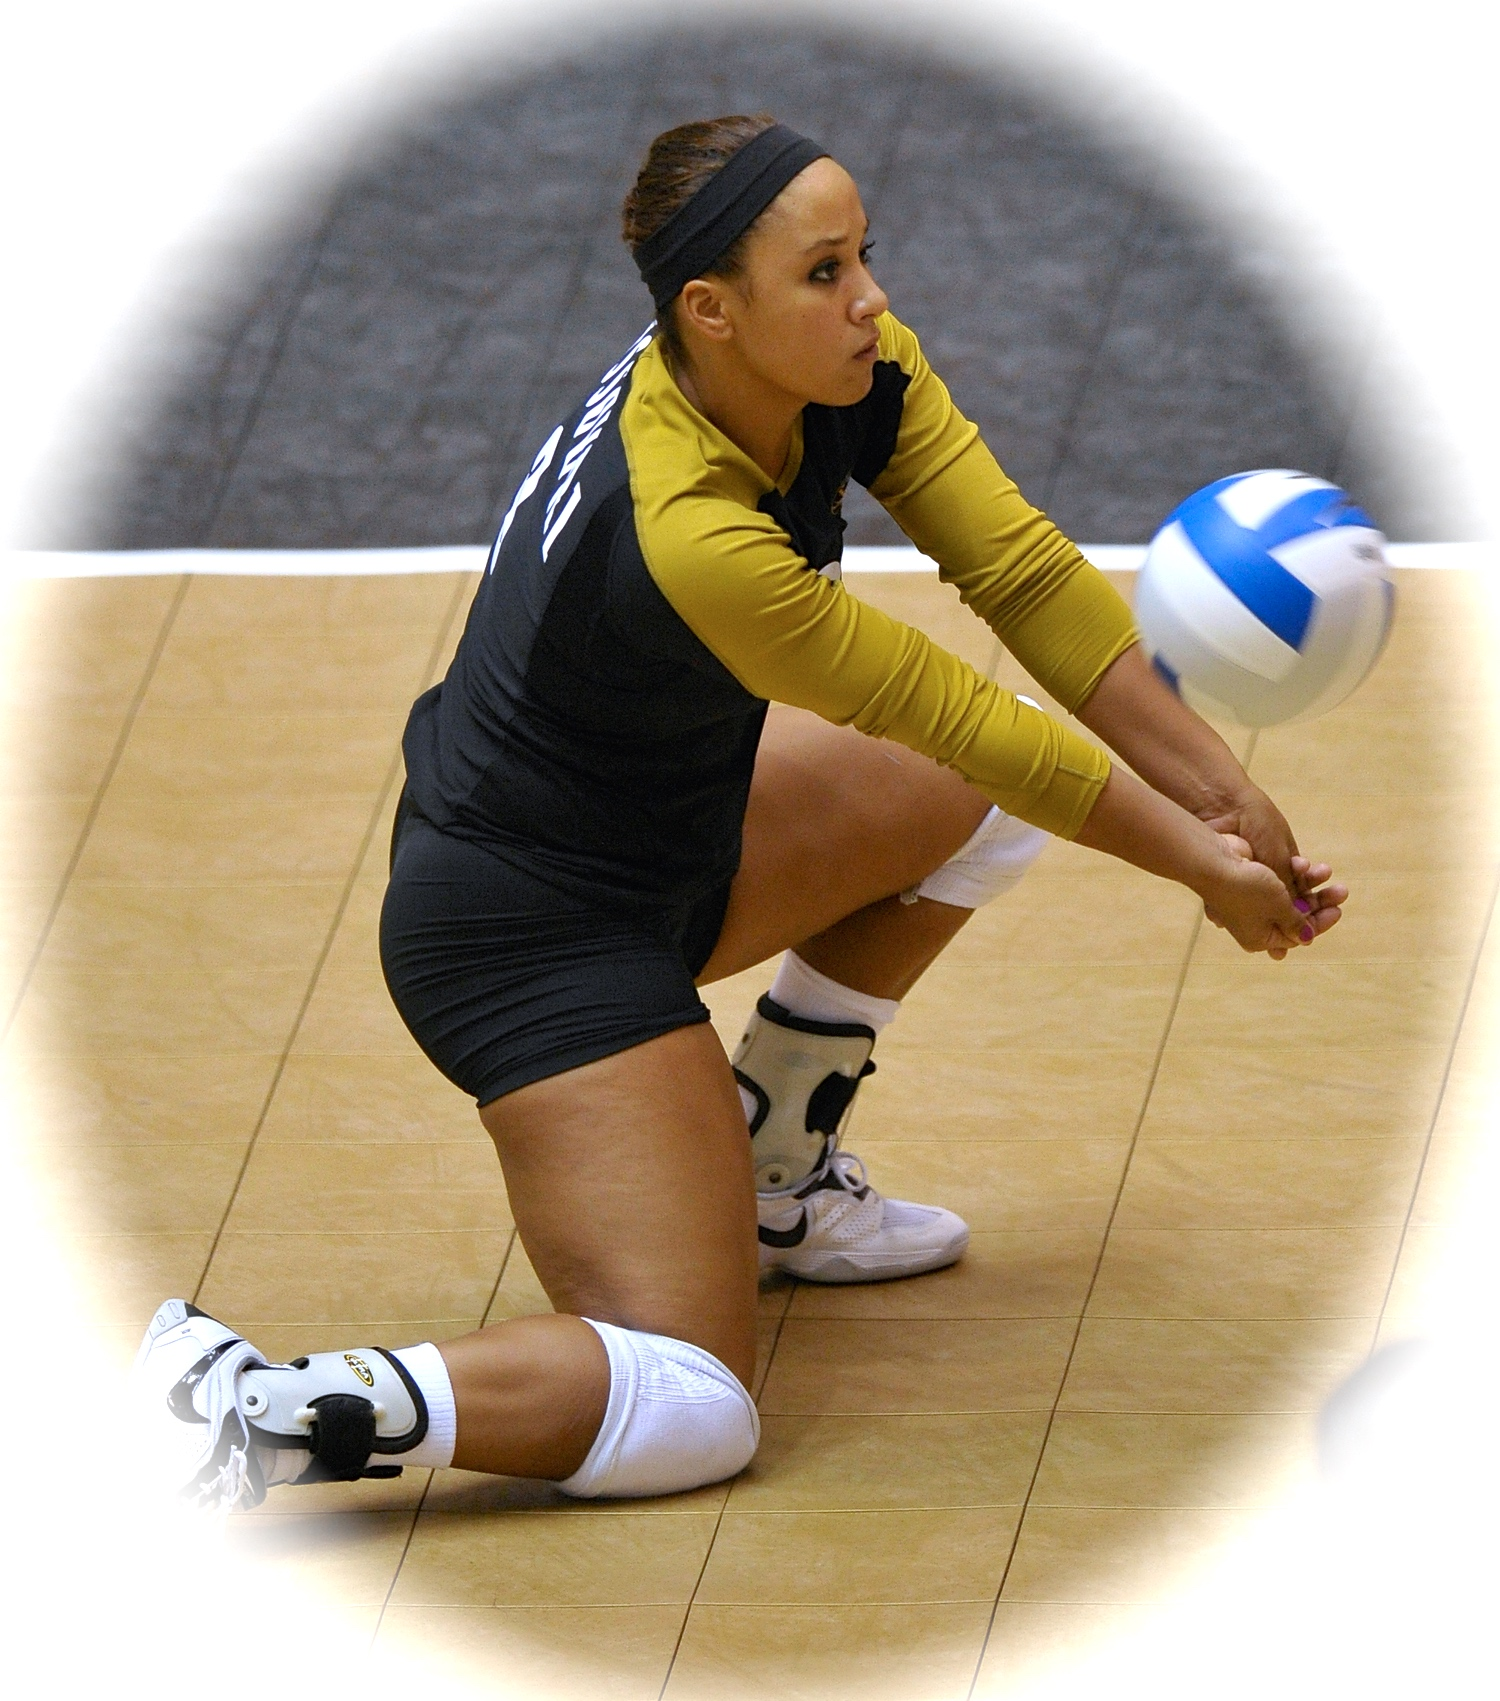 All lessons will be instructed by former Mizzou libero and professional volleyball player, Caitlyn Vann. Vann, who has been coaching for 8 years, played professionally overseas, was a High School All-American, 9-time BIG 12 Defensive Player of the year, and a 3-time member of the USA Youth & Junior National Team.   Click here  to read more about her coaching and playing background.